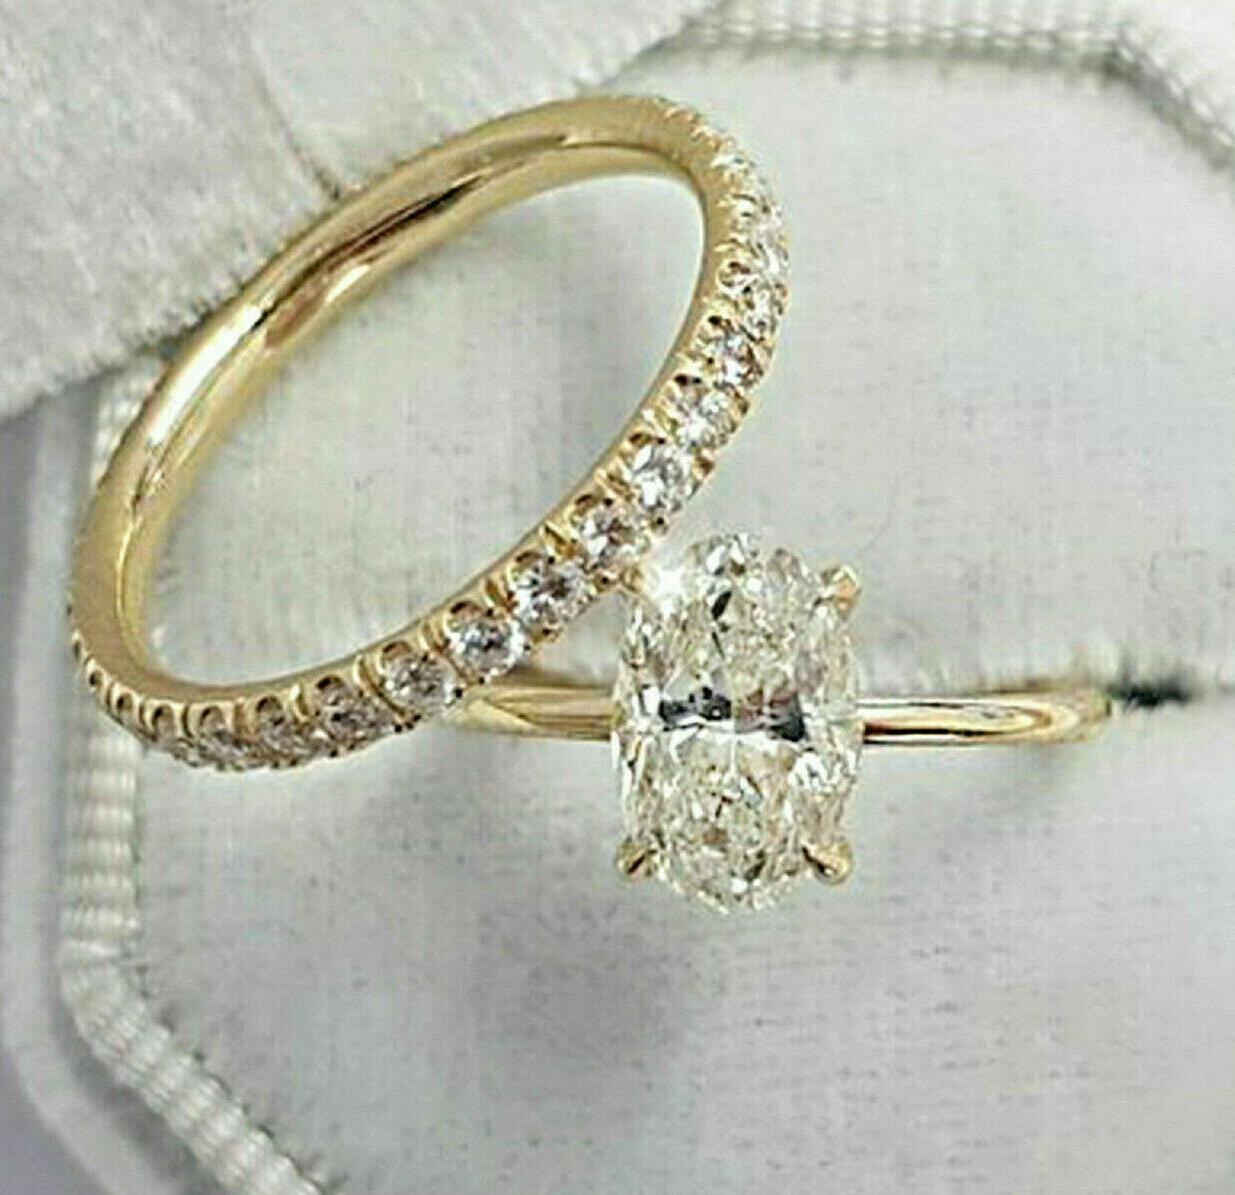 2 51ct oval cut solitaire diamond engagement